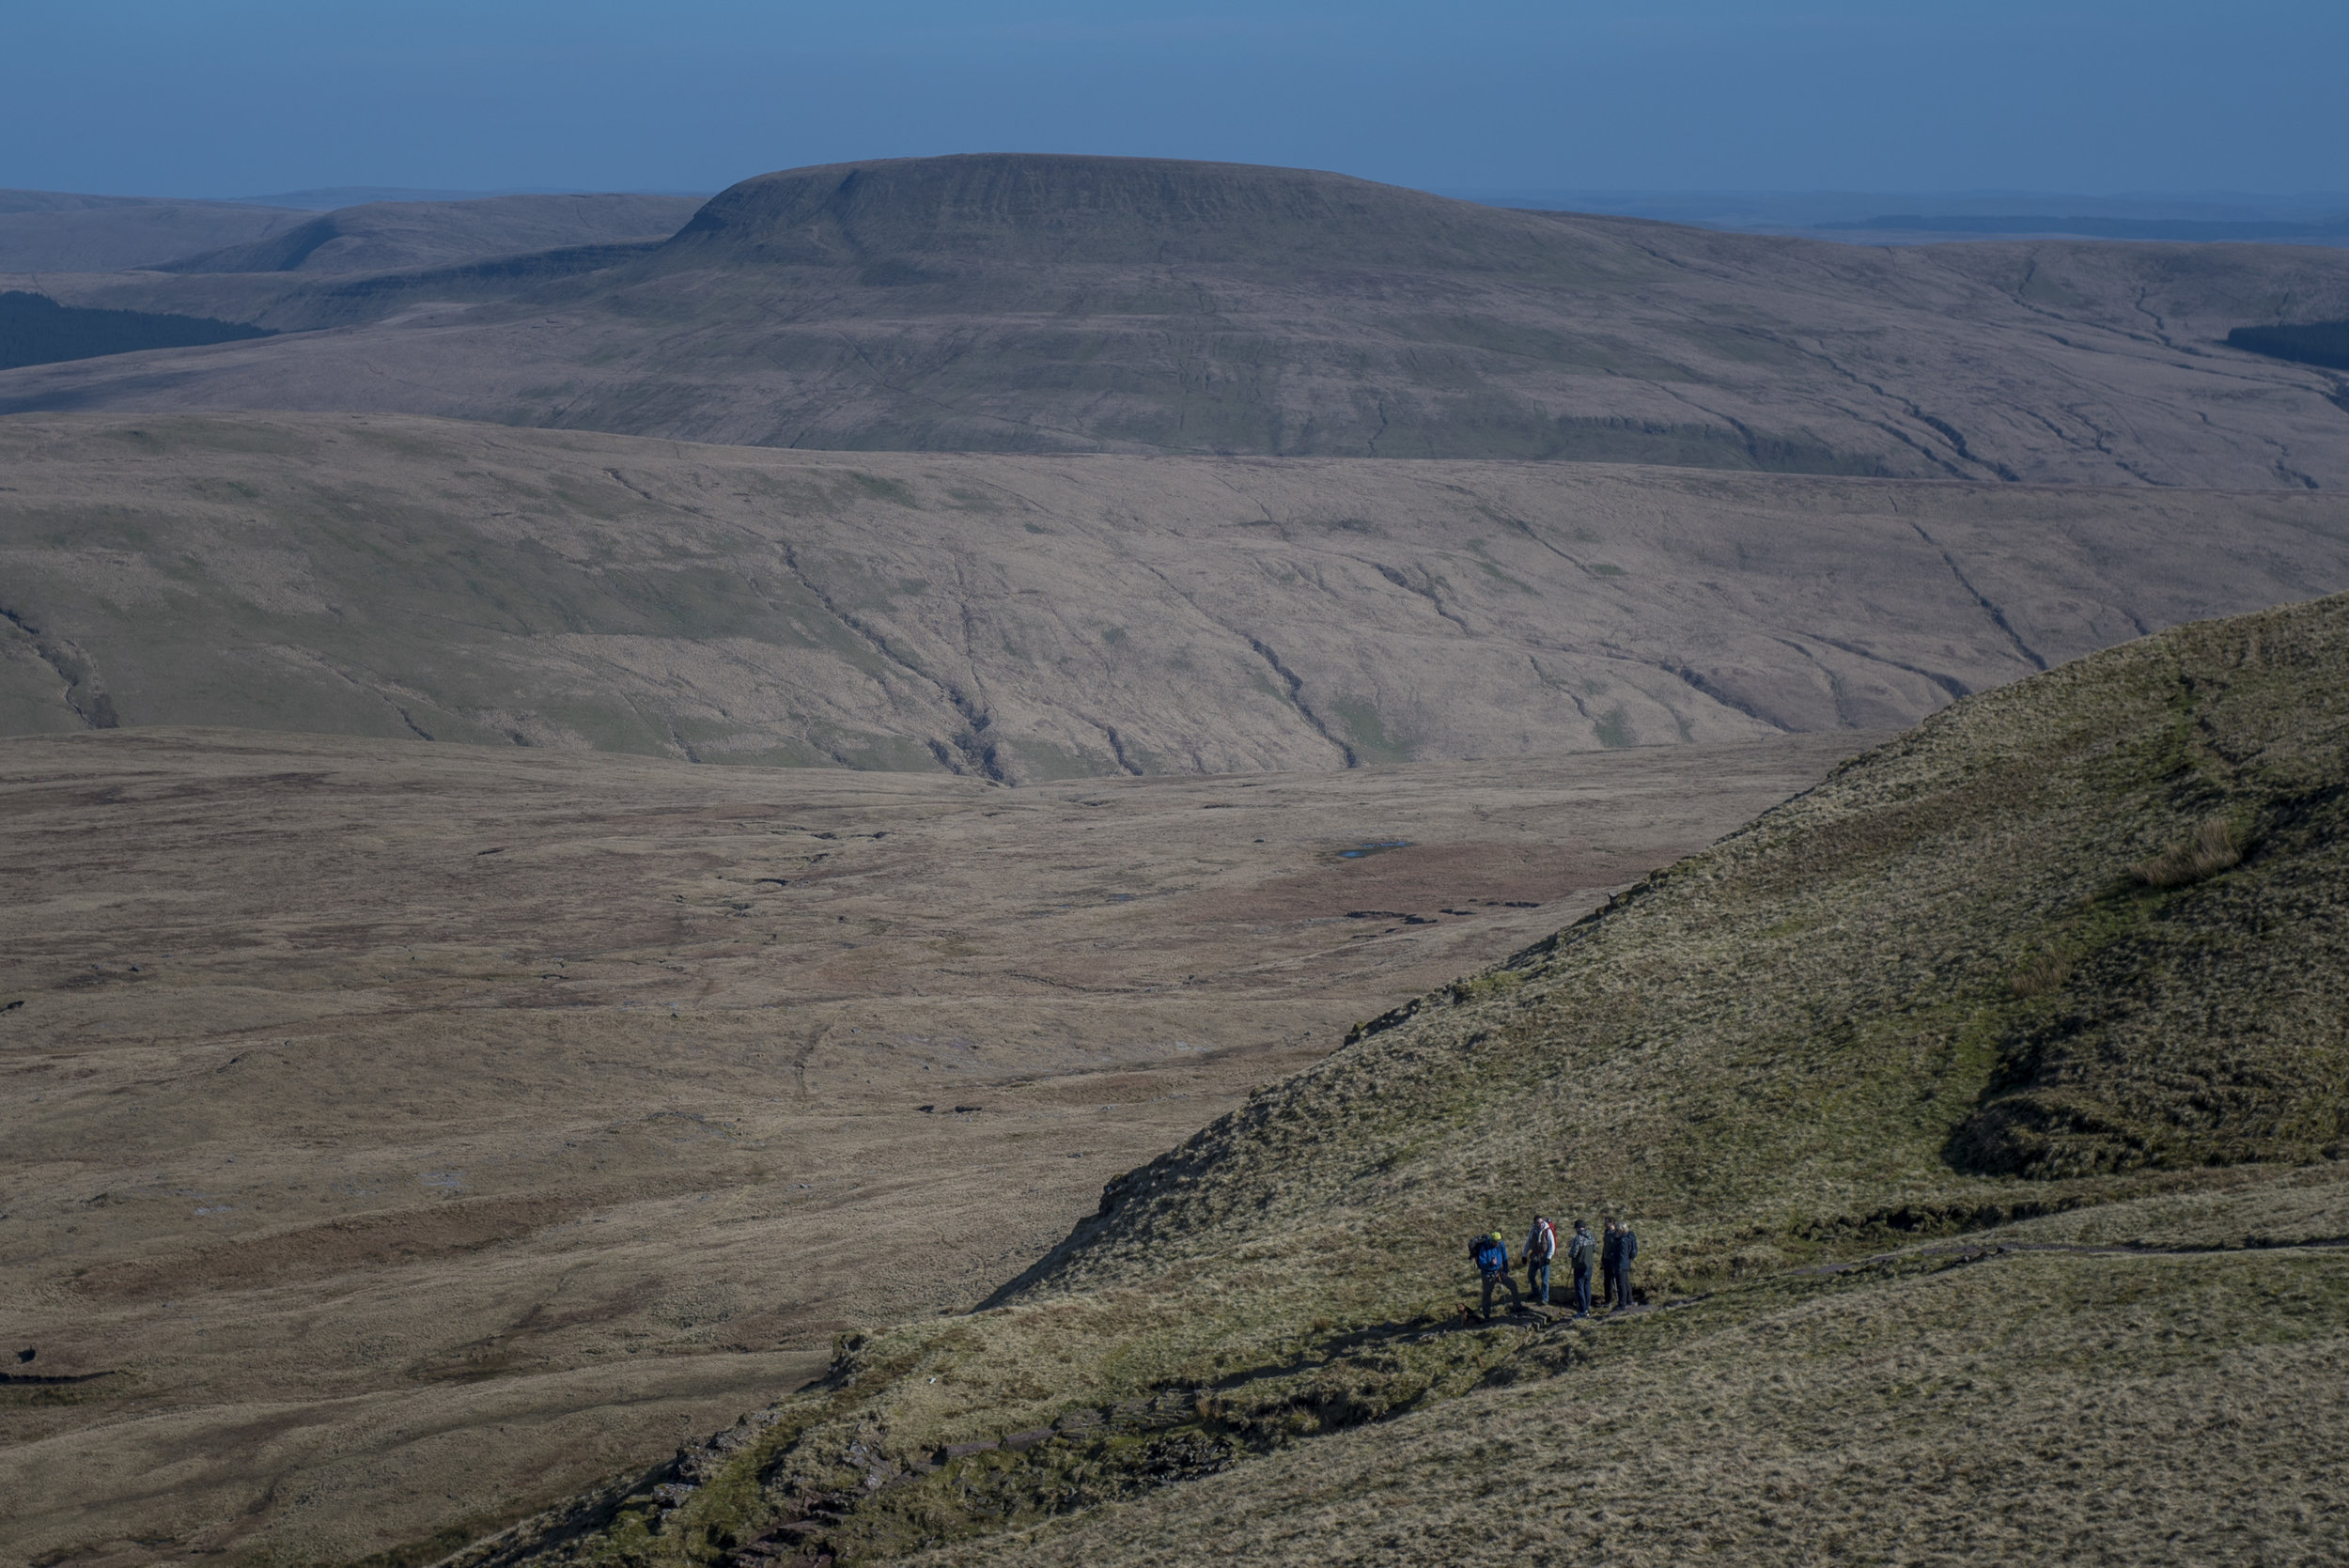 The scale of the mountains, even the gentler grassy ones of the Brecon Beacons, is never more evident than in this snap of the group